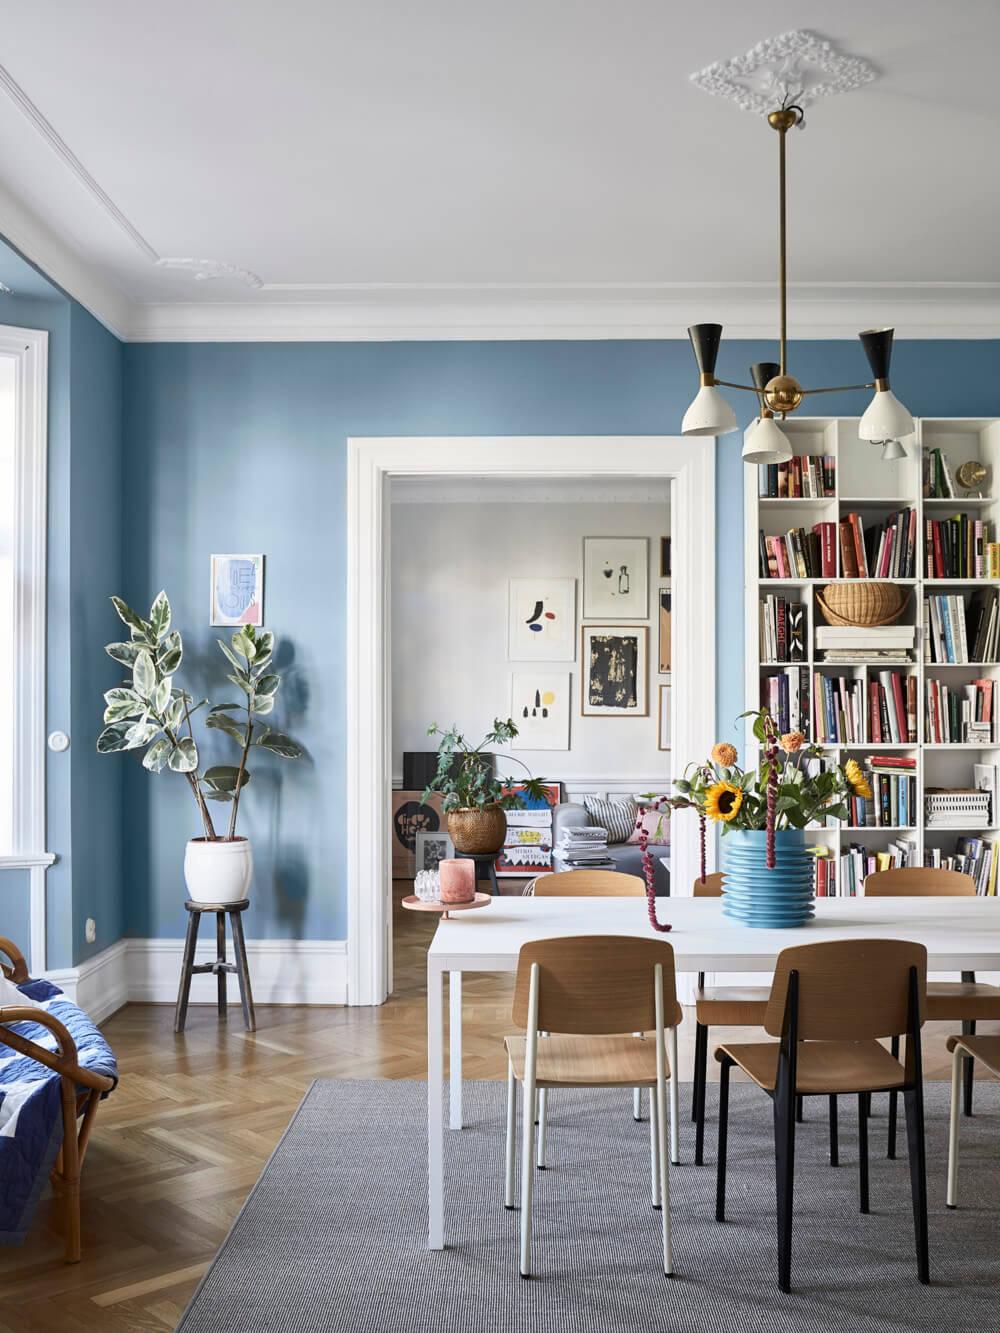 A Scandinavian Apartment Decorated in Blue and Grey Tones